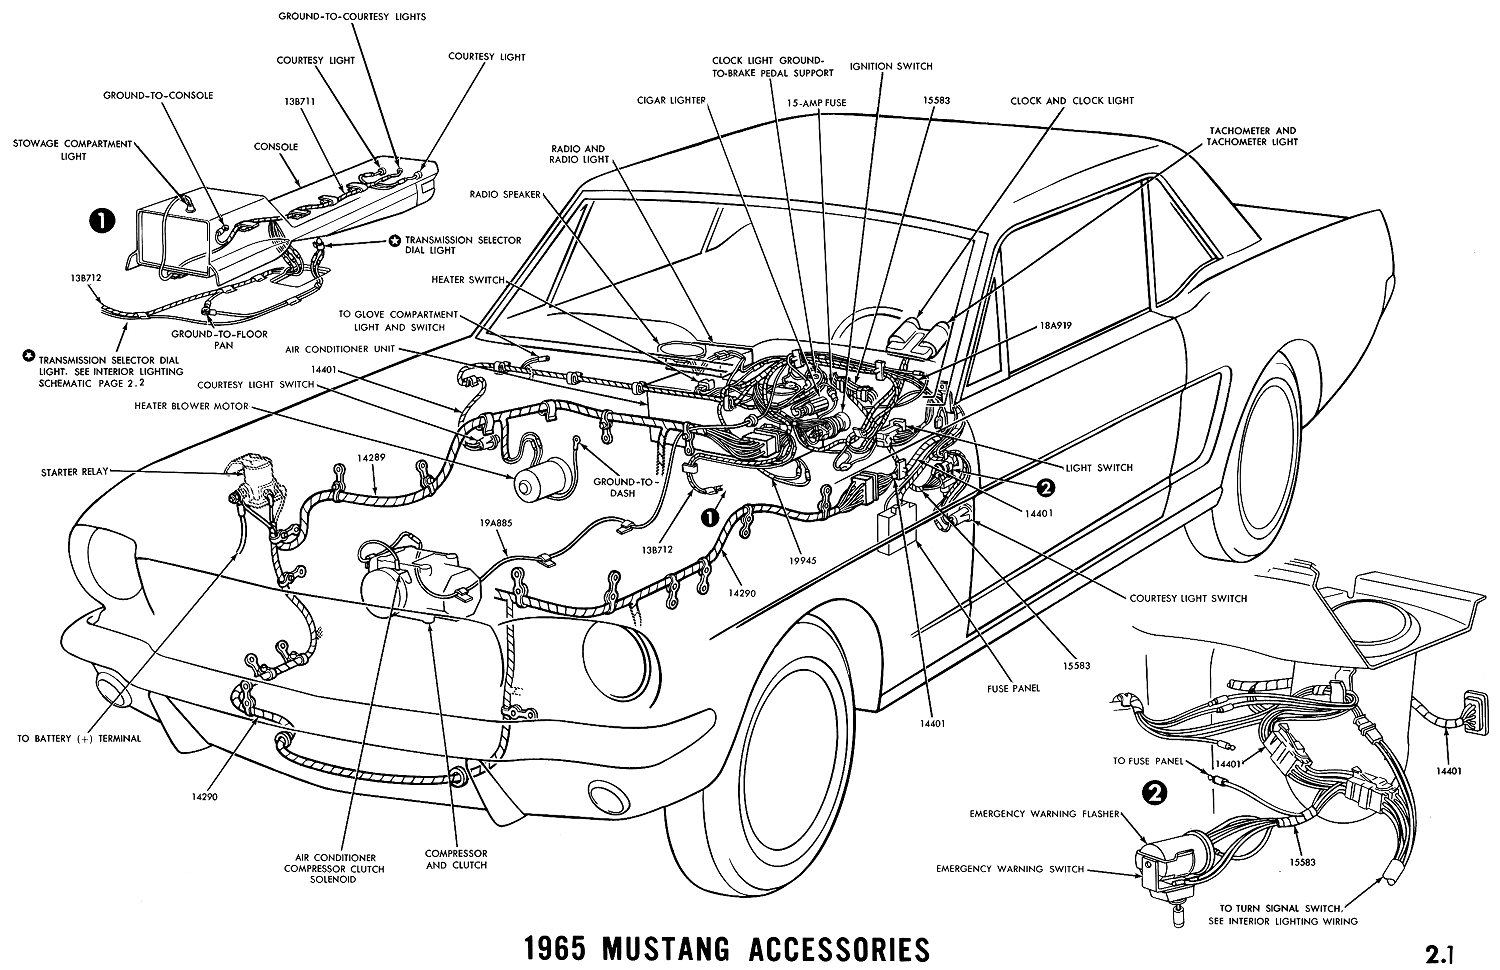 1965 Mustang Wiring Harness Diagram Trusted Ford Diagrams Average Joe Restoration Johnson Accessories Pictorial Or